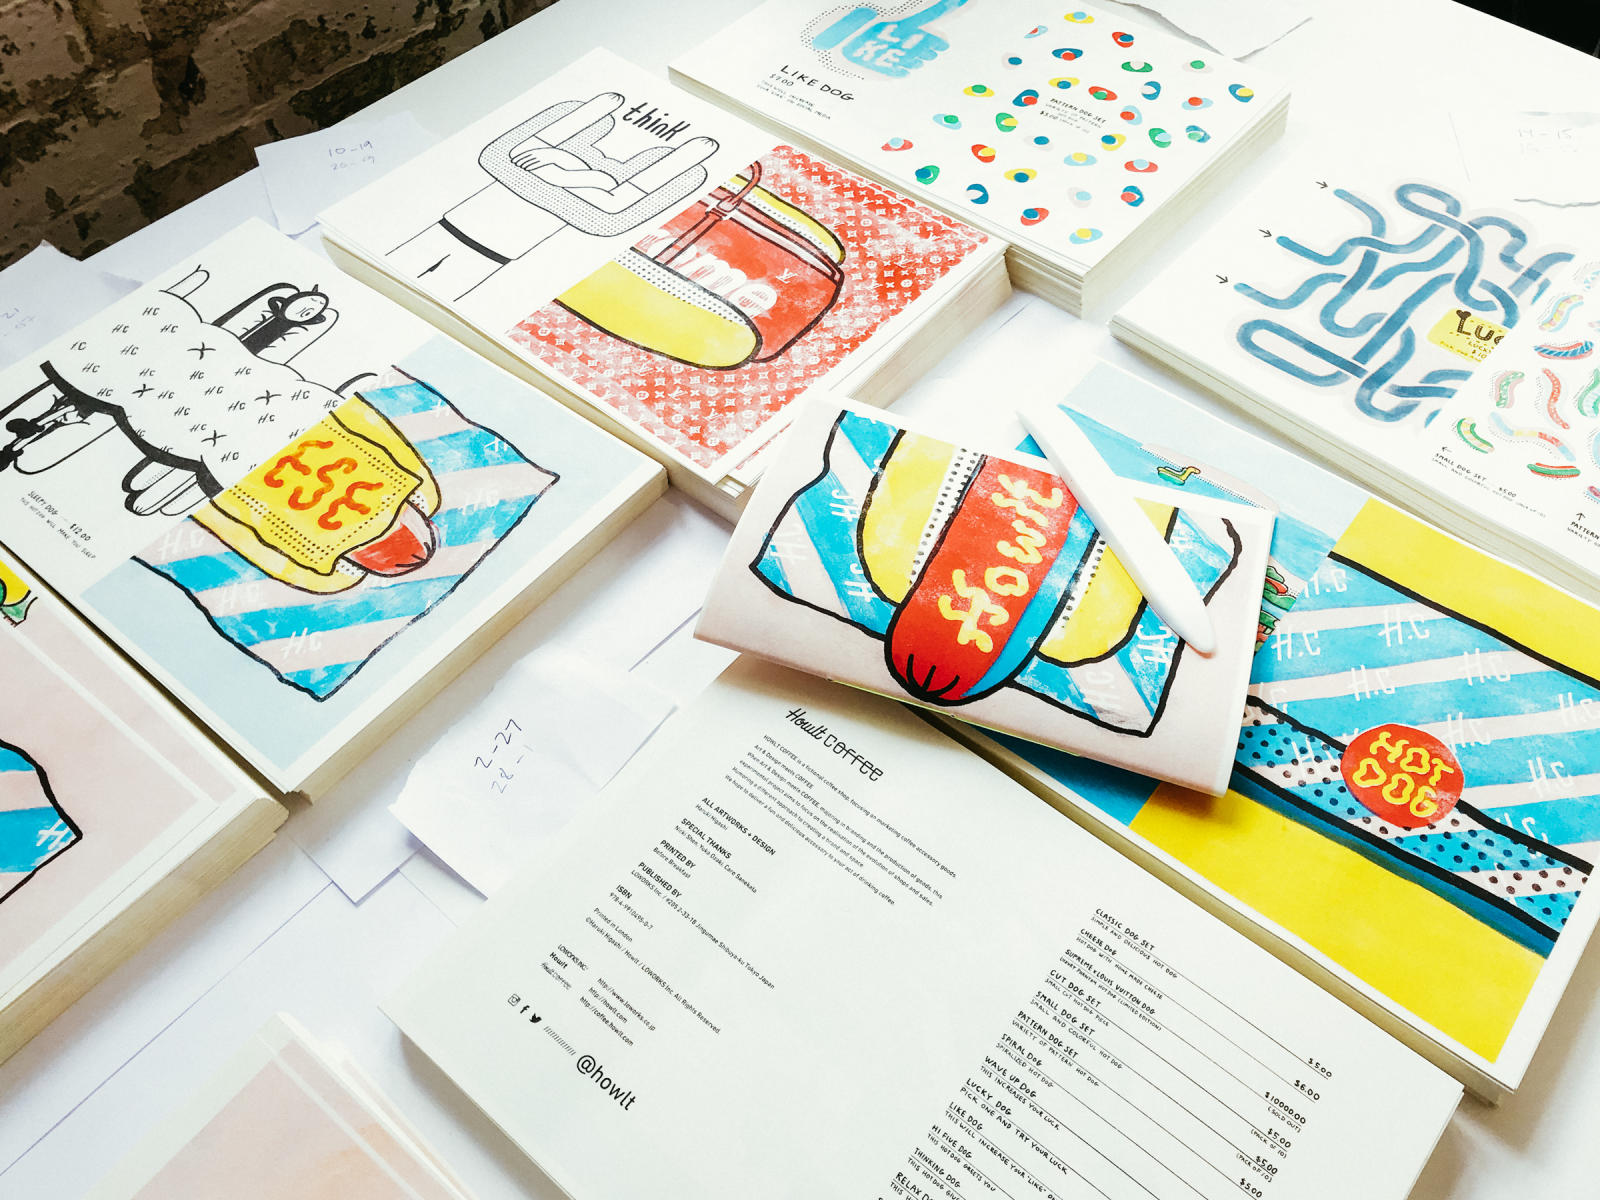 All pages are printed and bound by Risograph.